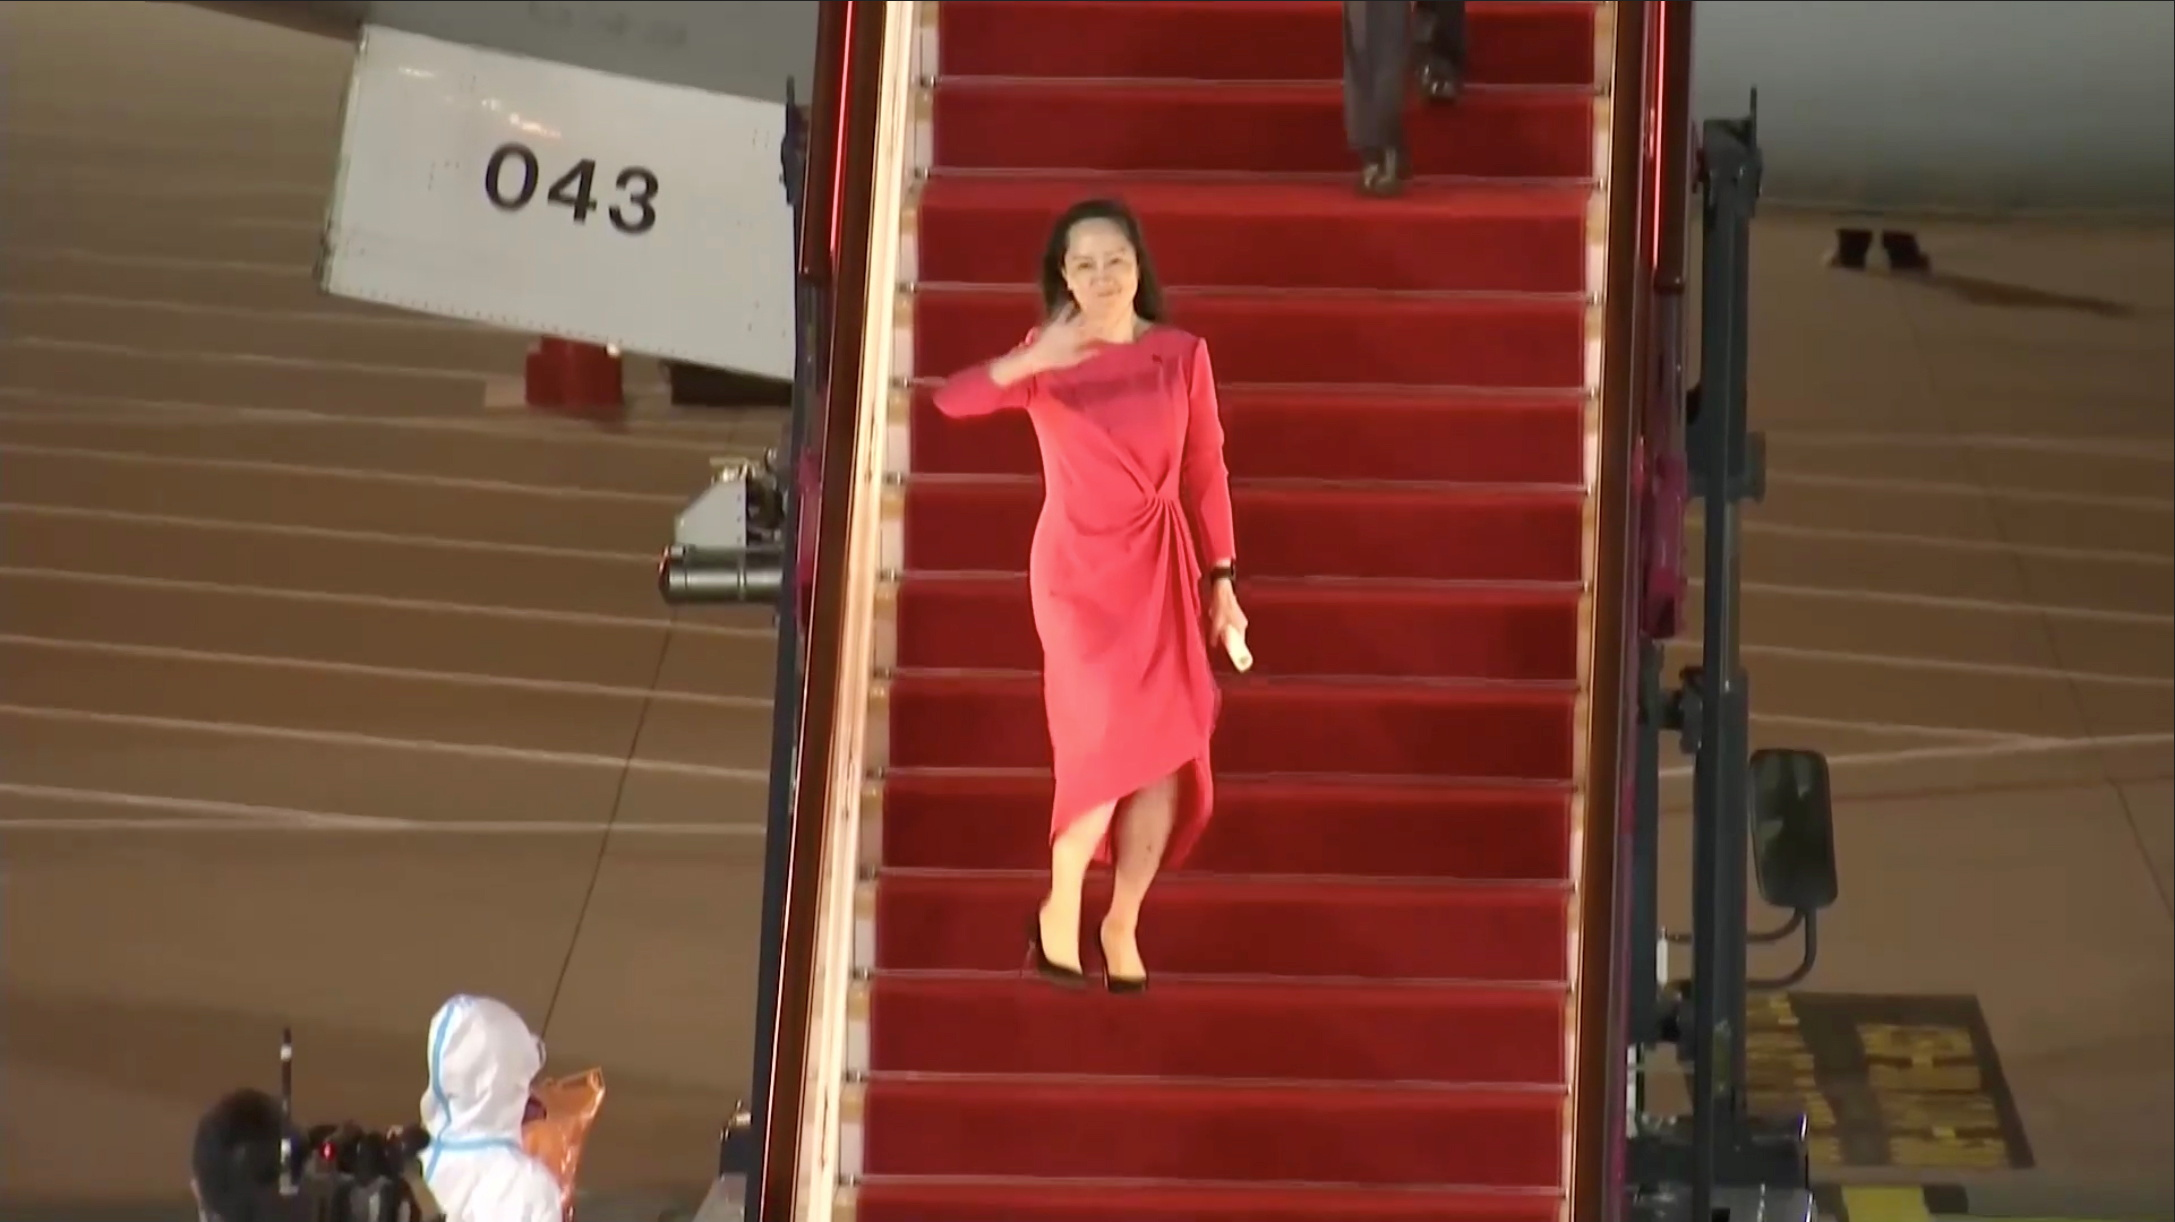 Huawei Technologies Chief Financial Officer Meng Wanzhou waves upon arriving from Canada at Shenzhen Baoan International Airport, in Shenzhen, Guangdong province, China September 25, 2021. CCTV via REUTERS TV